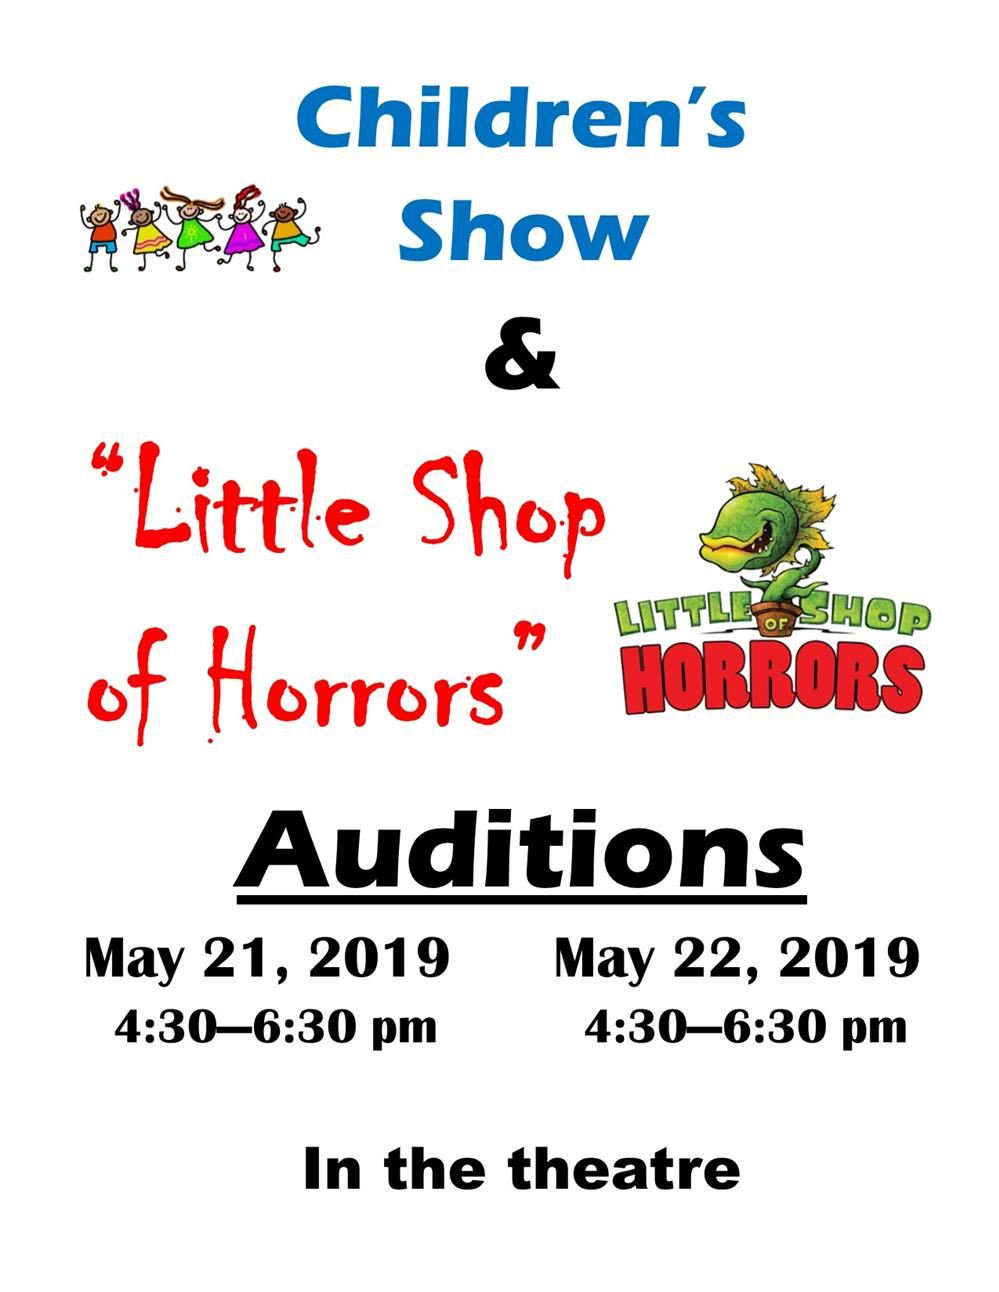 CHILDREN'S SHOW & LITTLE SHOP OF HORRORS AUDITIONS